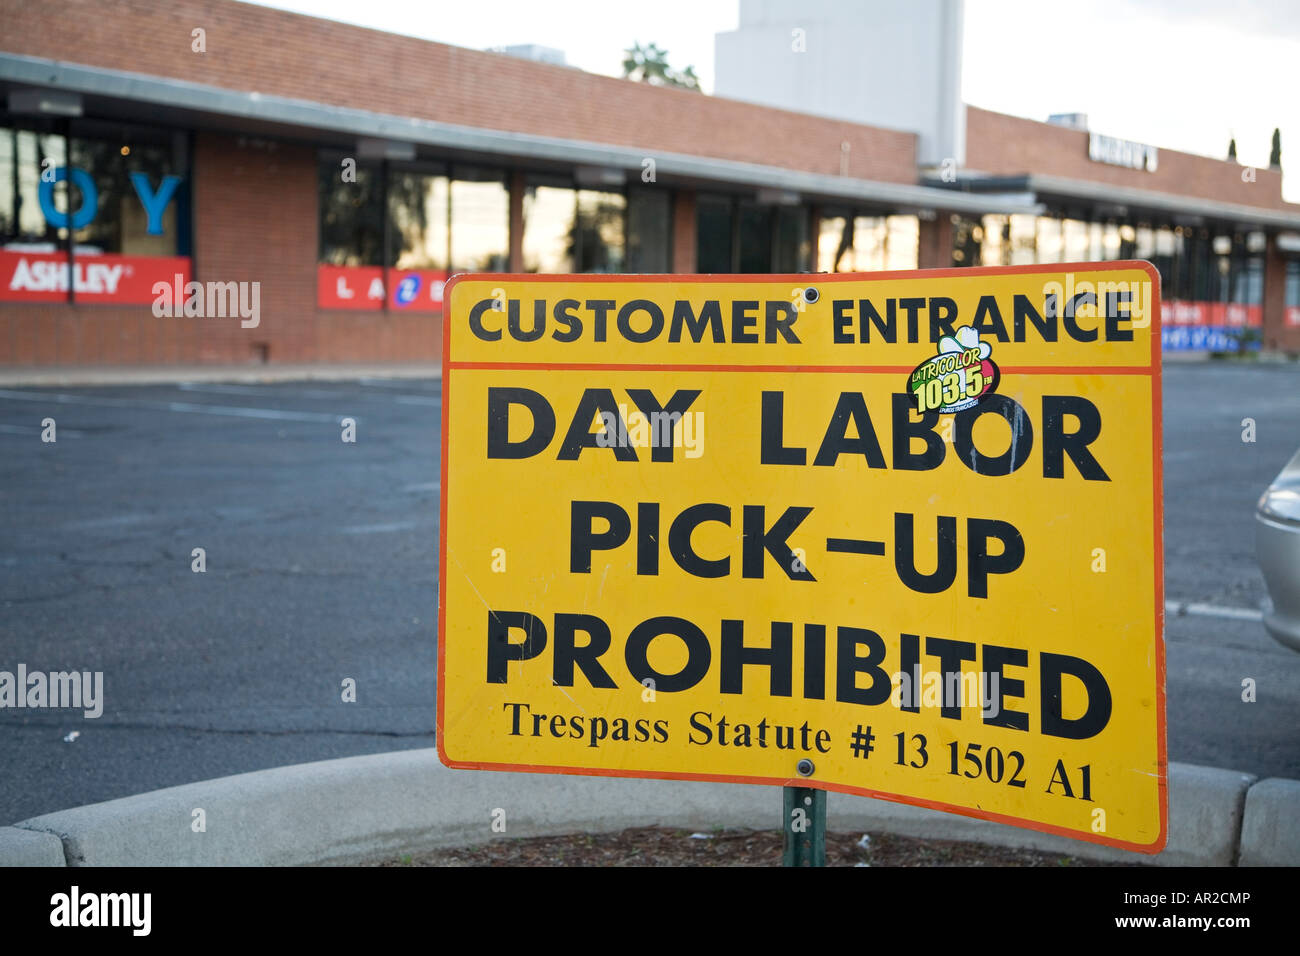 Sign prohibits pick up of day laborers in parking lot - Stock Image